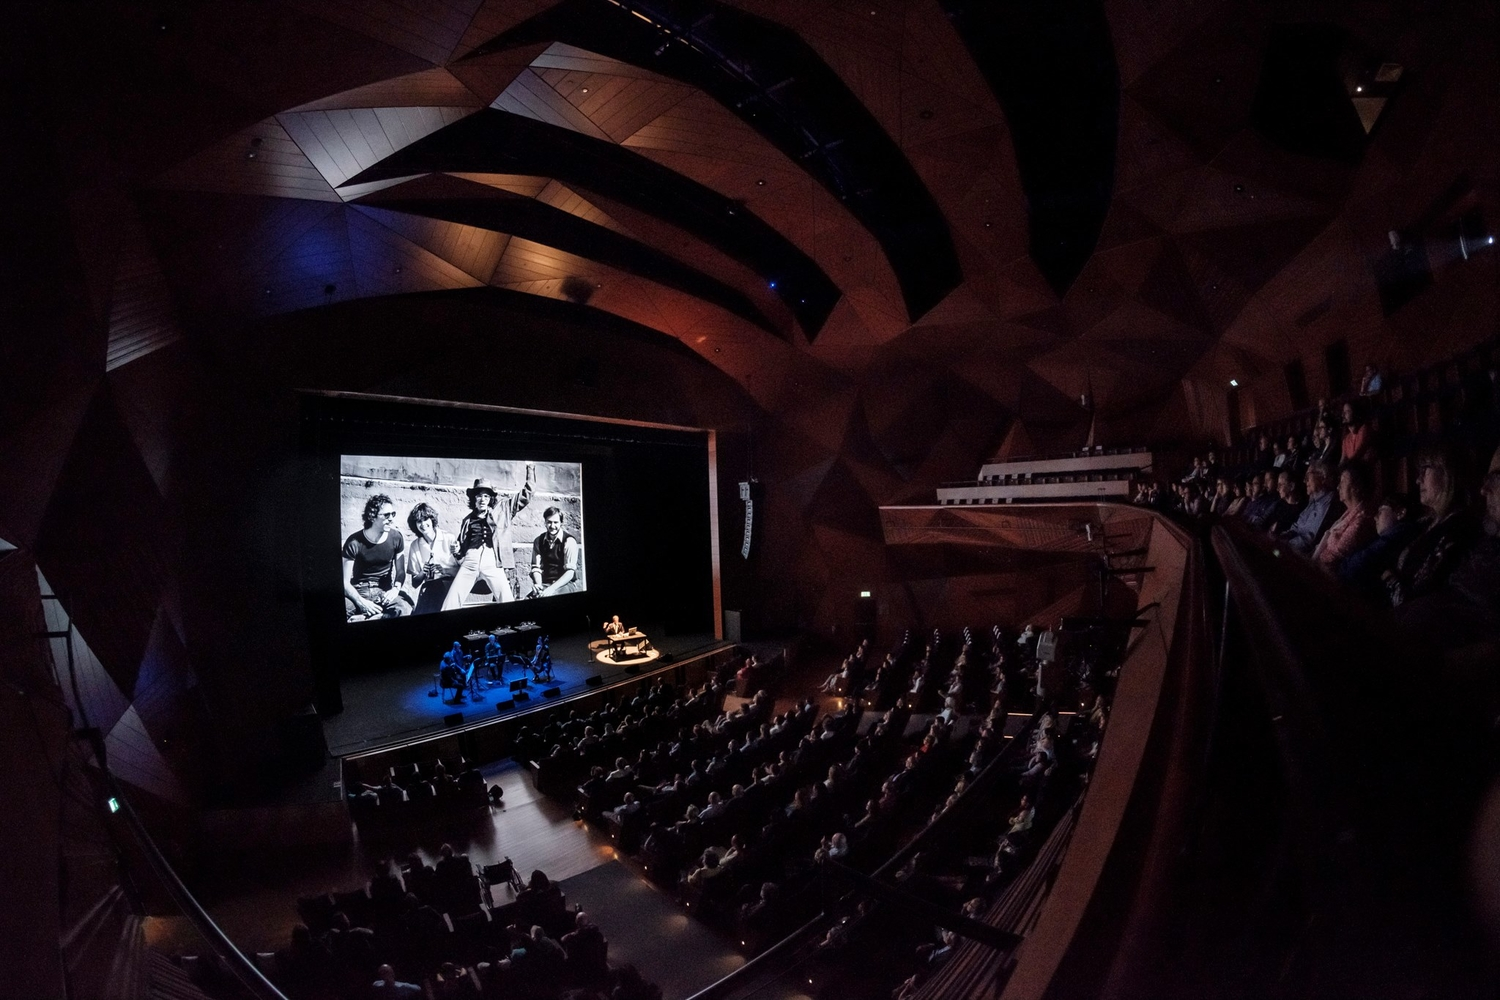 """The Kronos Quartet and Sam Green performing """"A Thousand Thoughts"""" at NYUAD Arts Center. Courtesy of NYUAD Arts Center"""